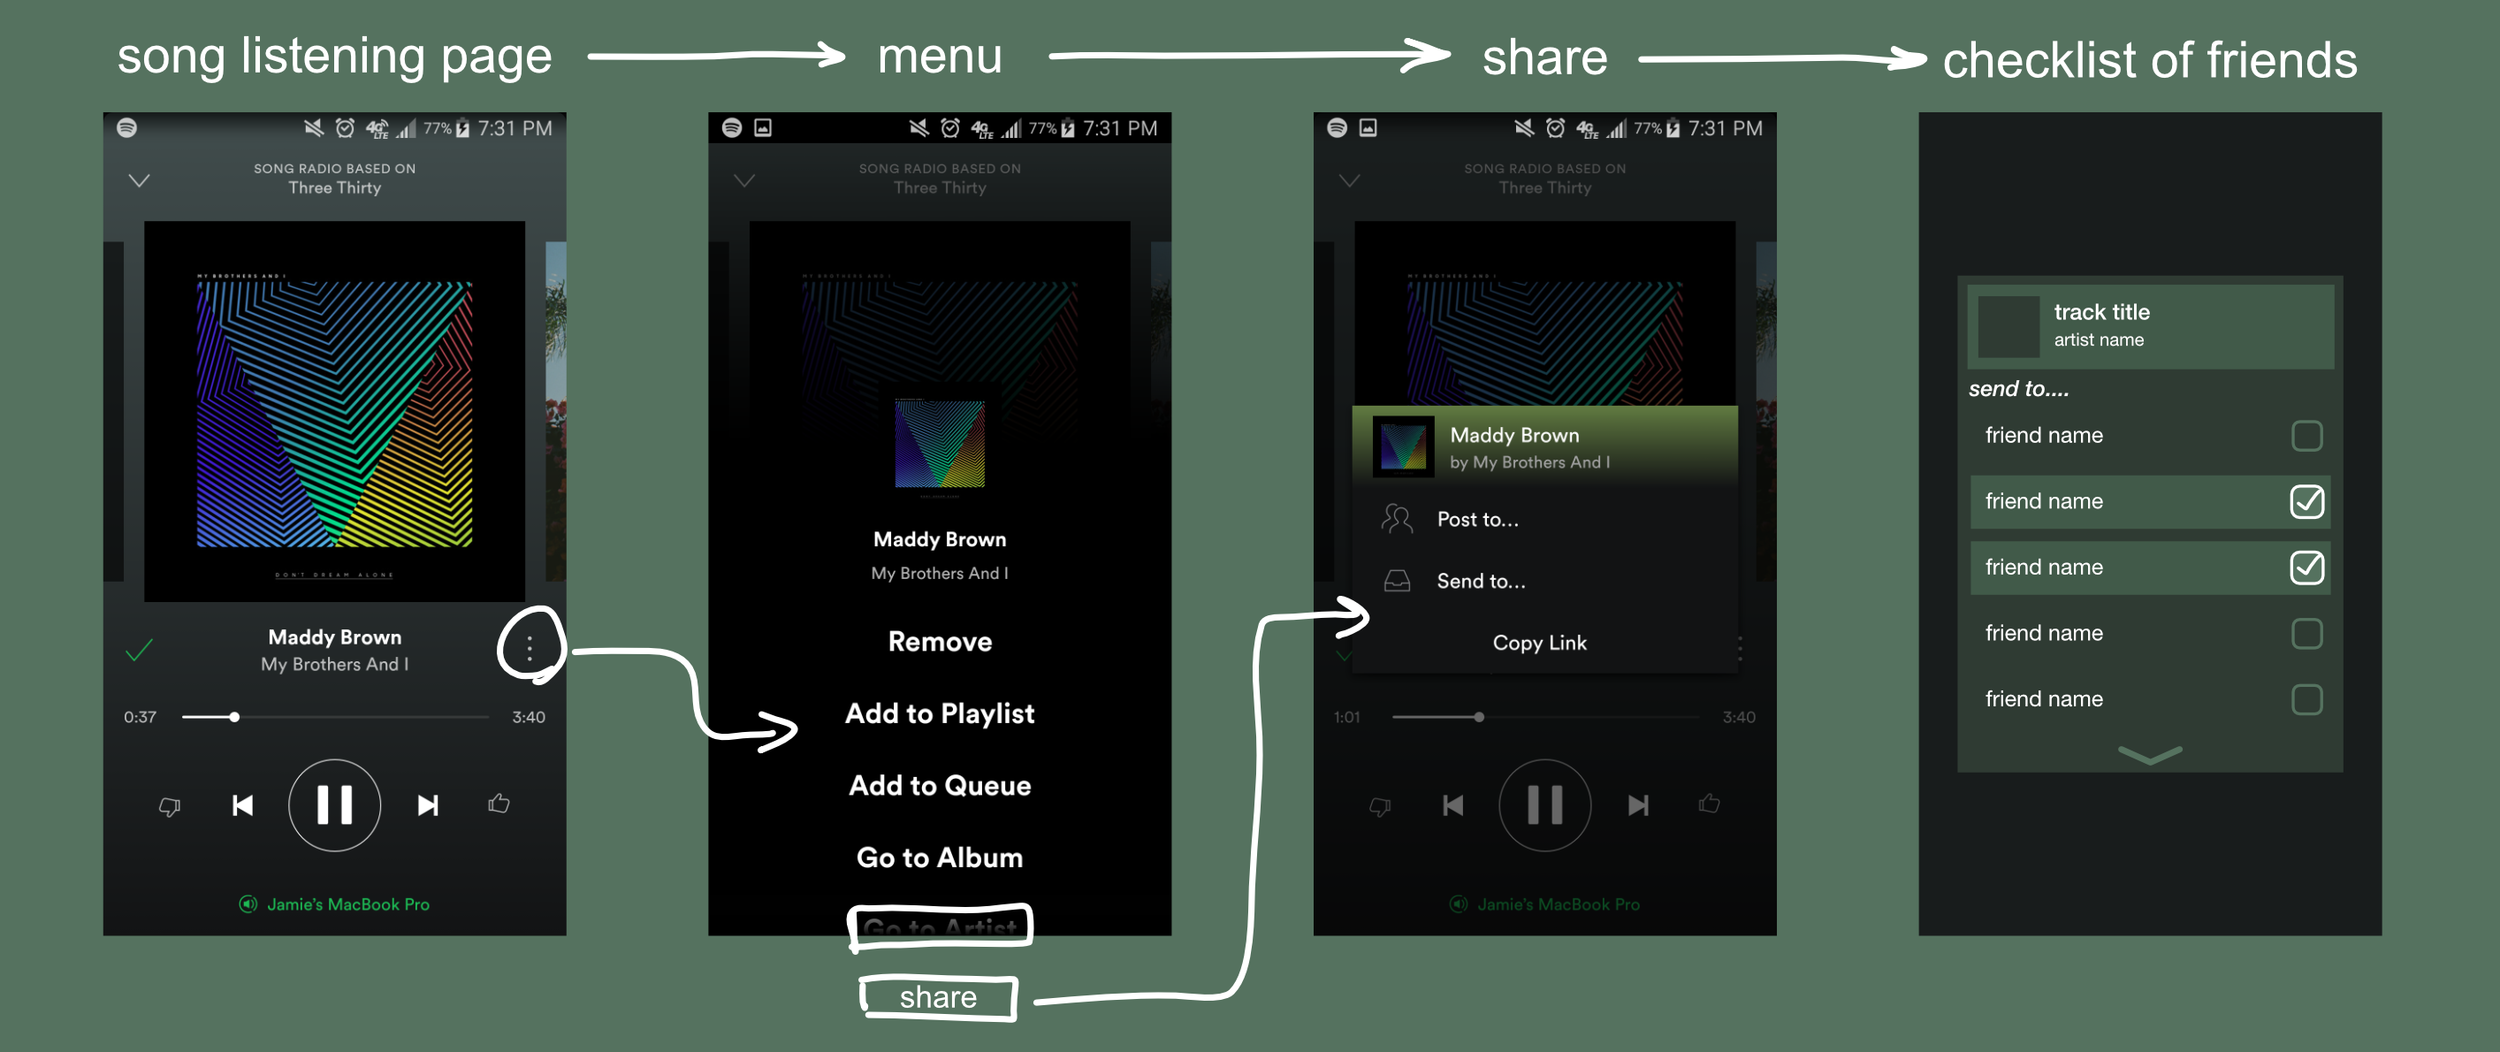 Page navigation showing the user path to the share menu.